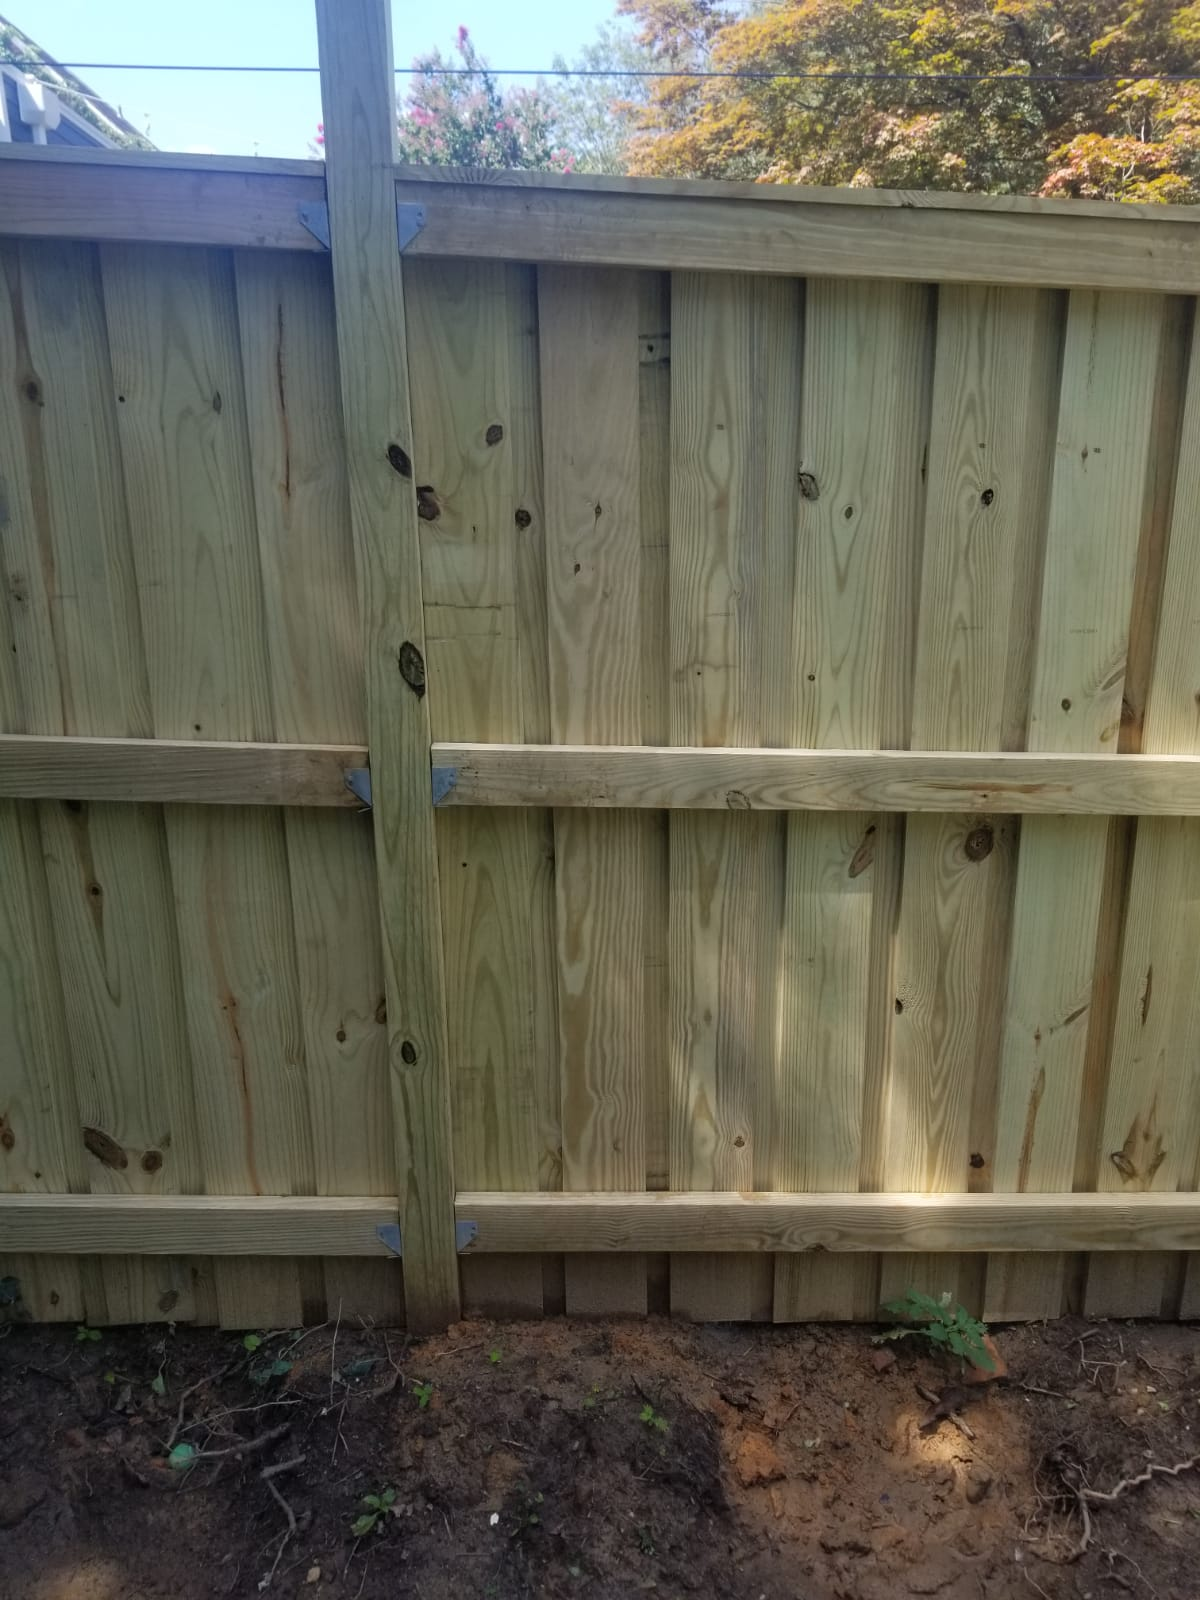 Considering to Sell Your House? Get New Fence Installed Boost Your Property Value